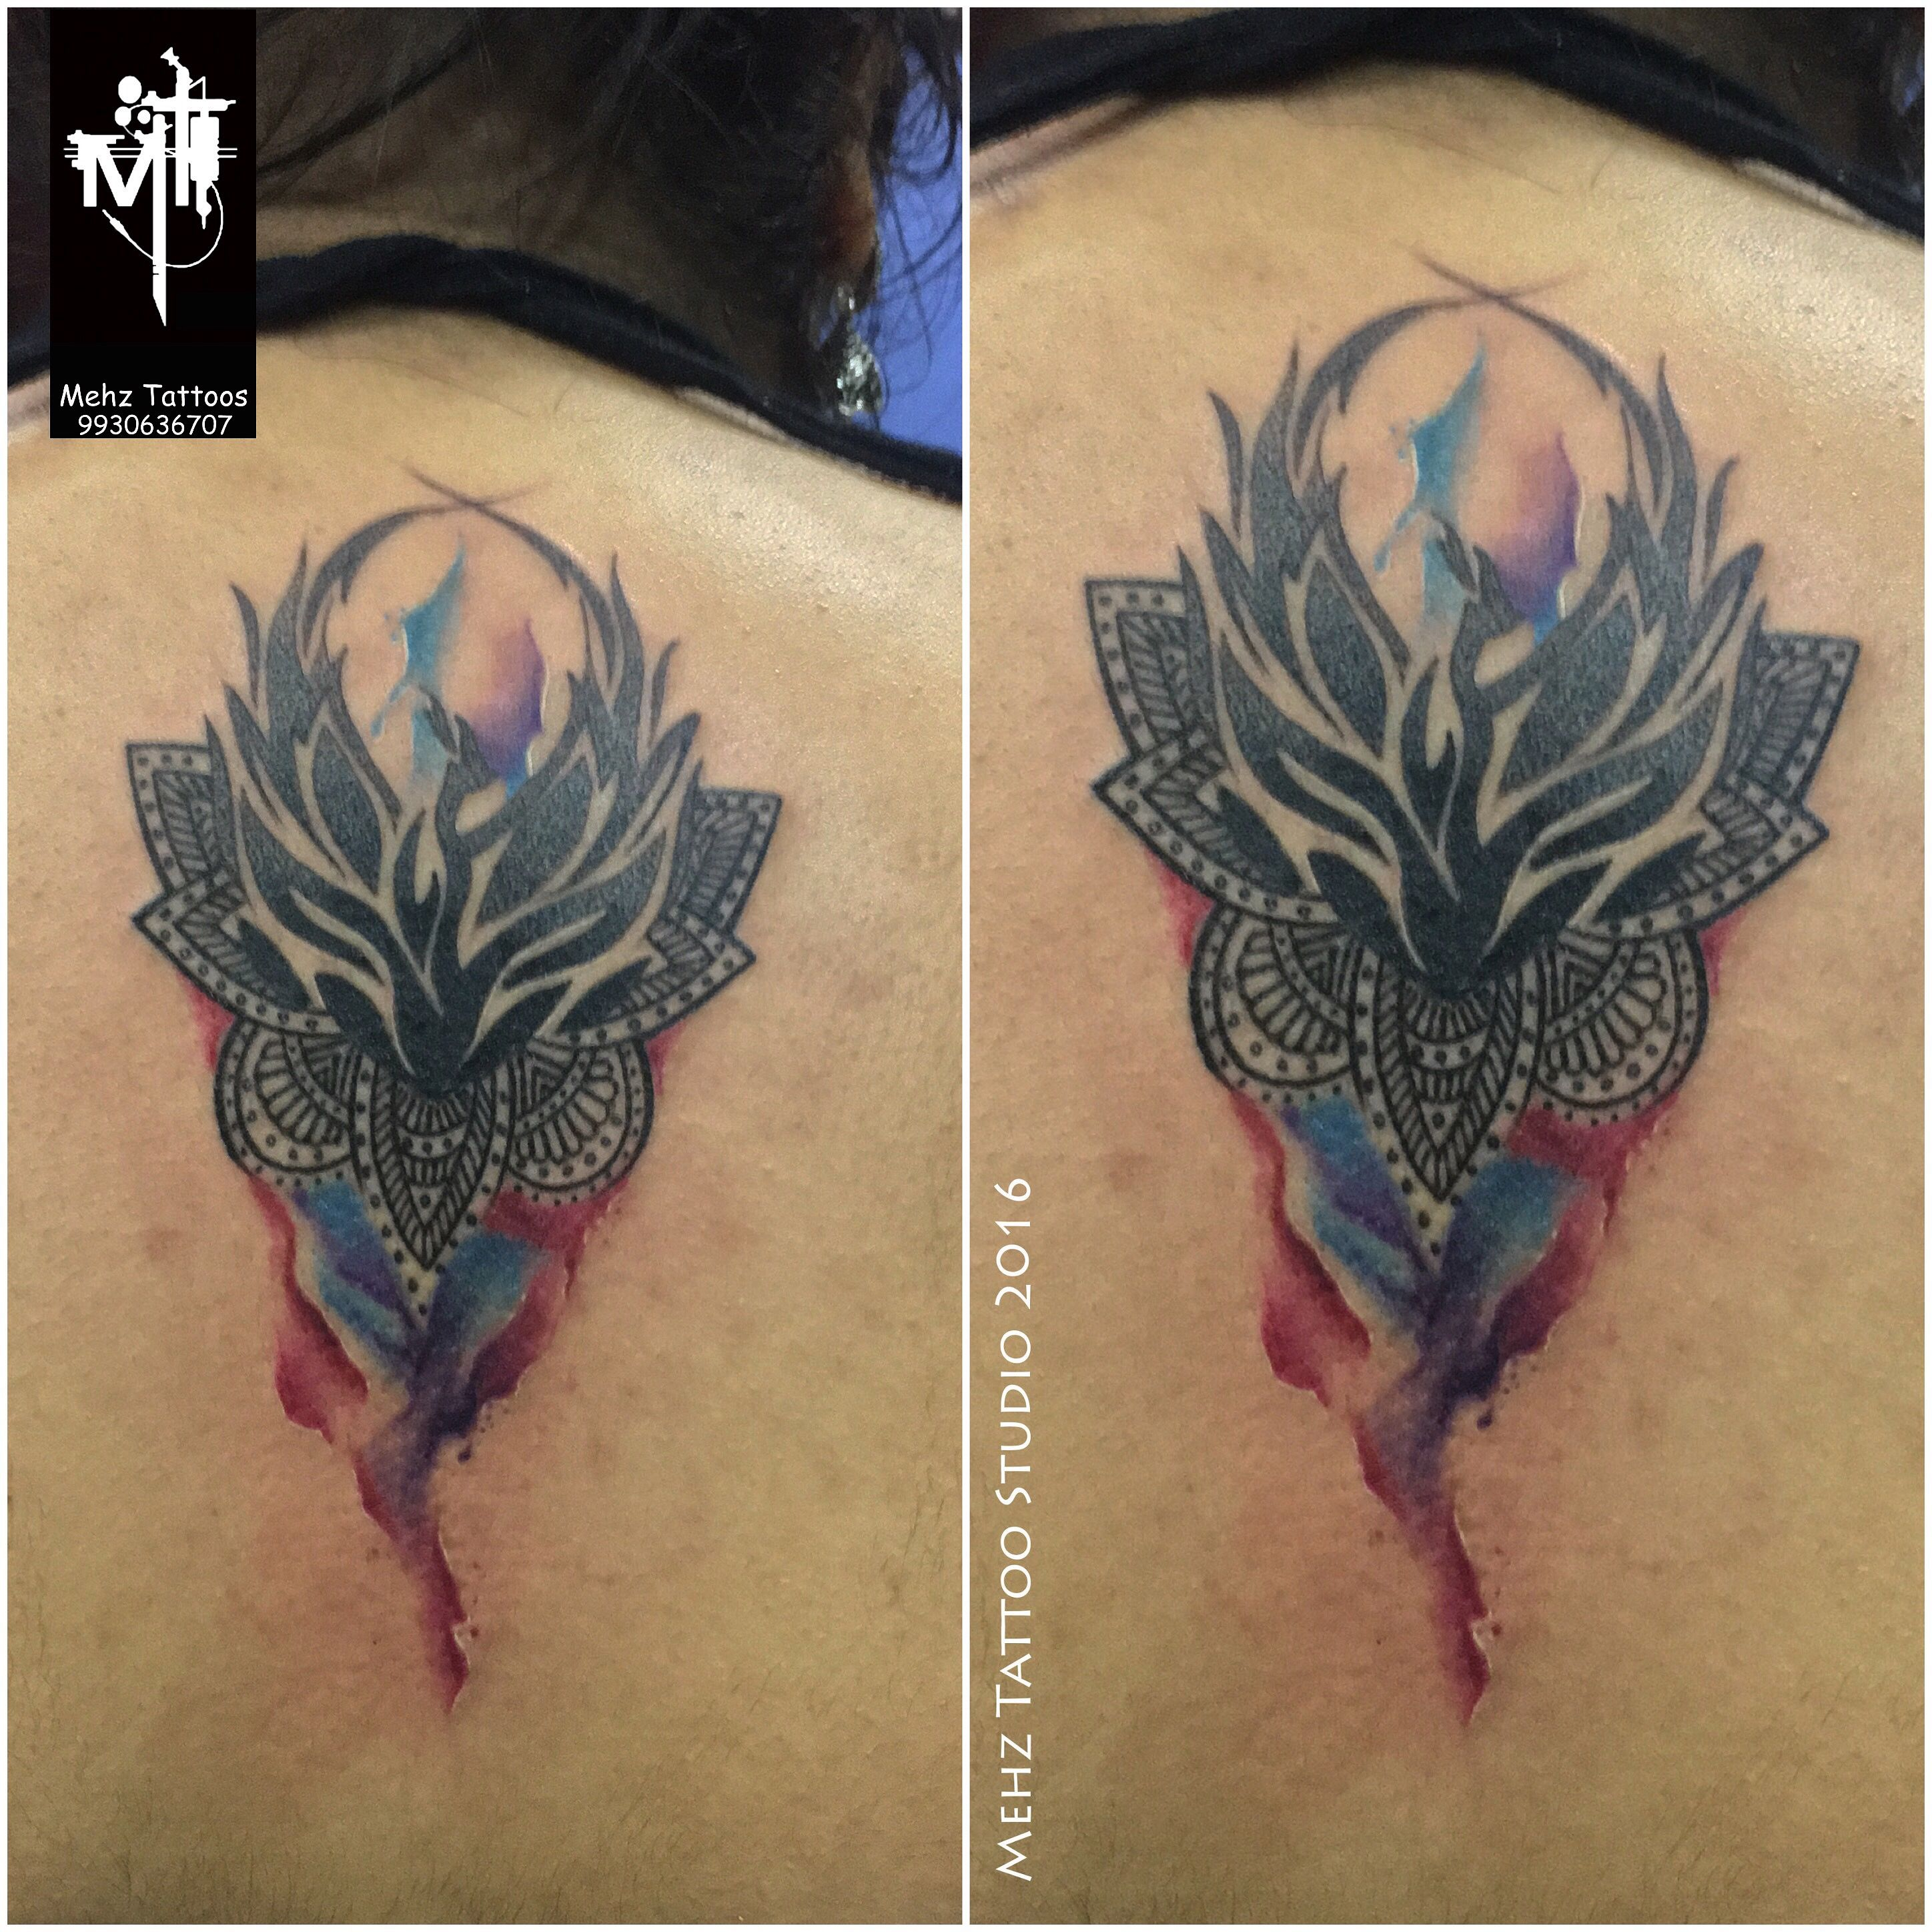 Customized Watercolor Phoenix with Mandala Tattoo done by Mahesh Amin at Mehz Tattoo Studio.  Hope you guys like this too :) Your Views, Comments and Shares would be appreciated !